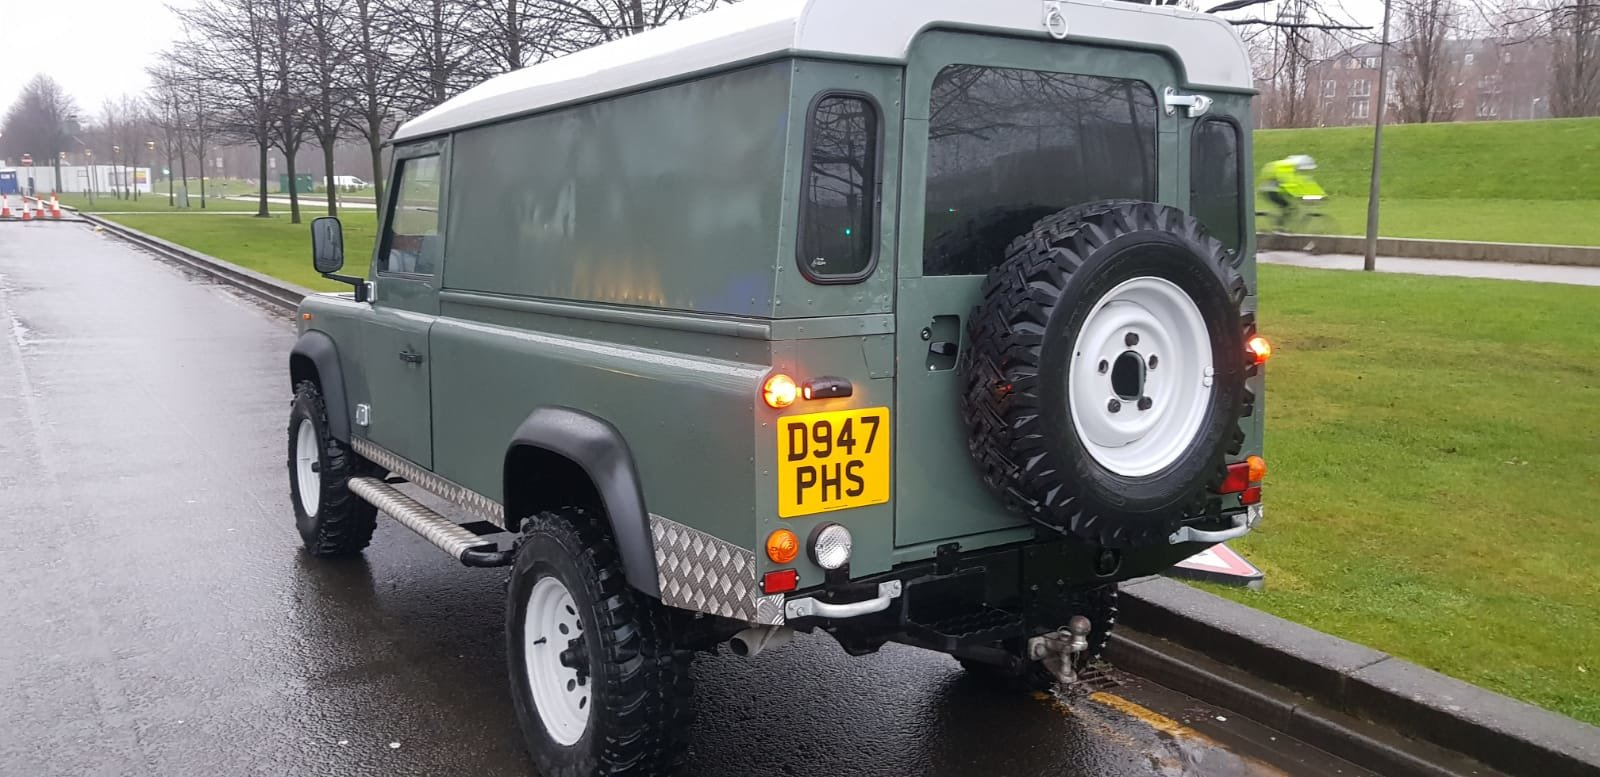 1986 Fully refurbished110 landrover For Sale (picture 1 of 12)